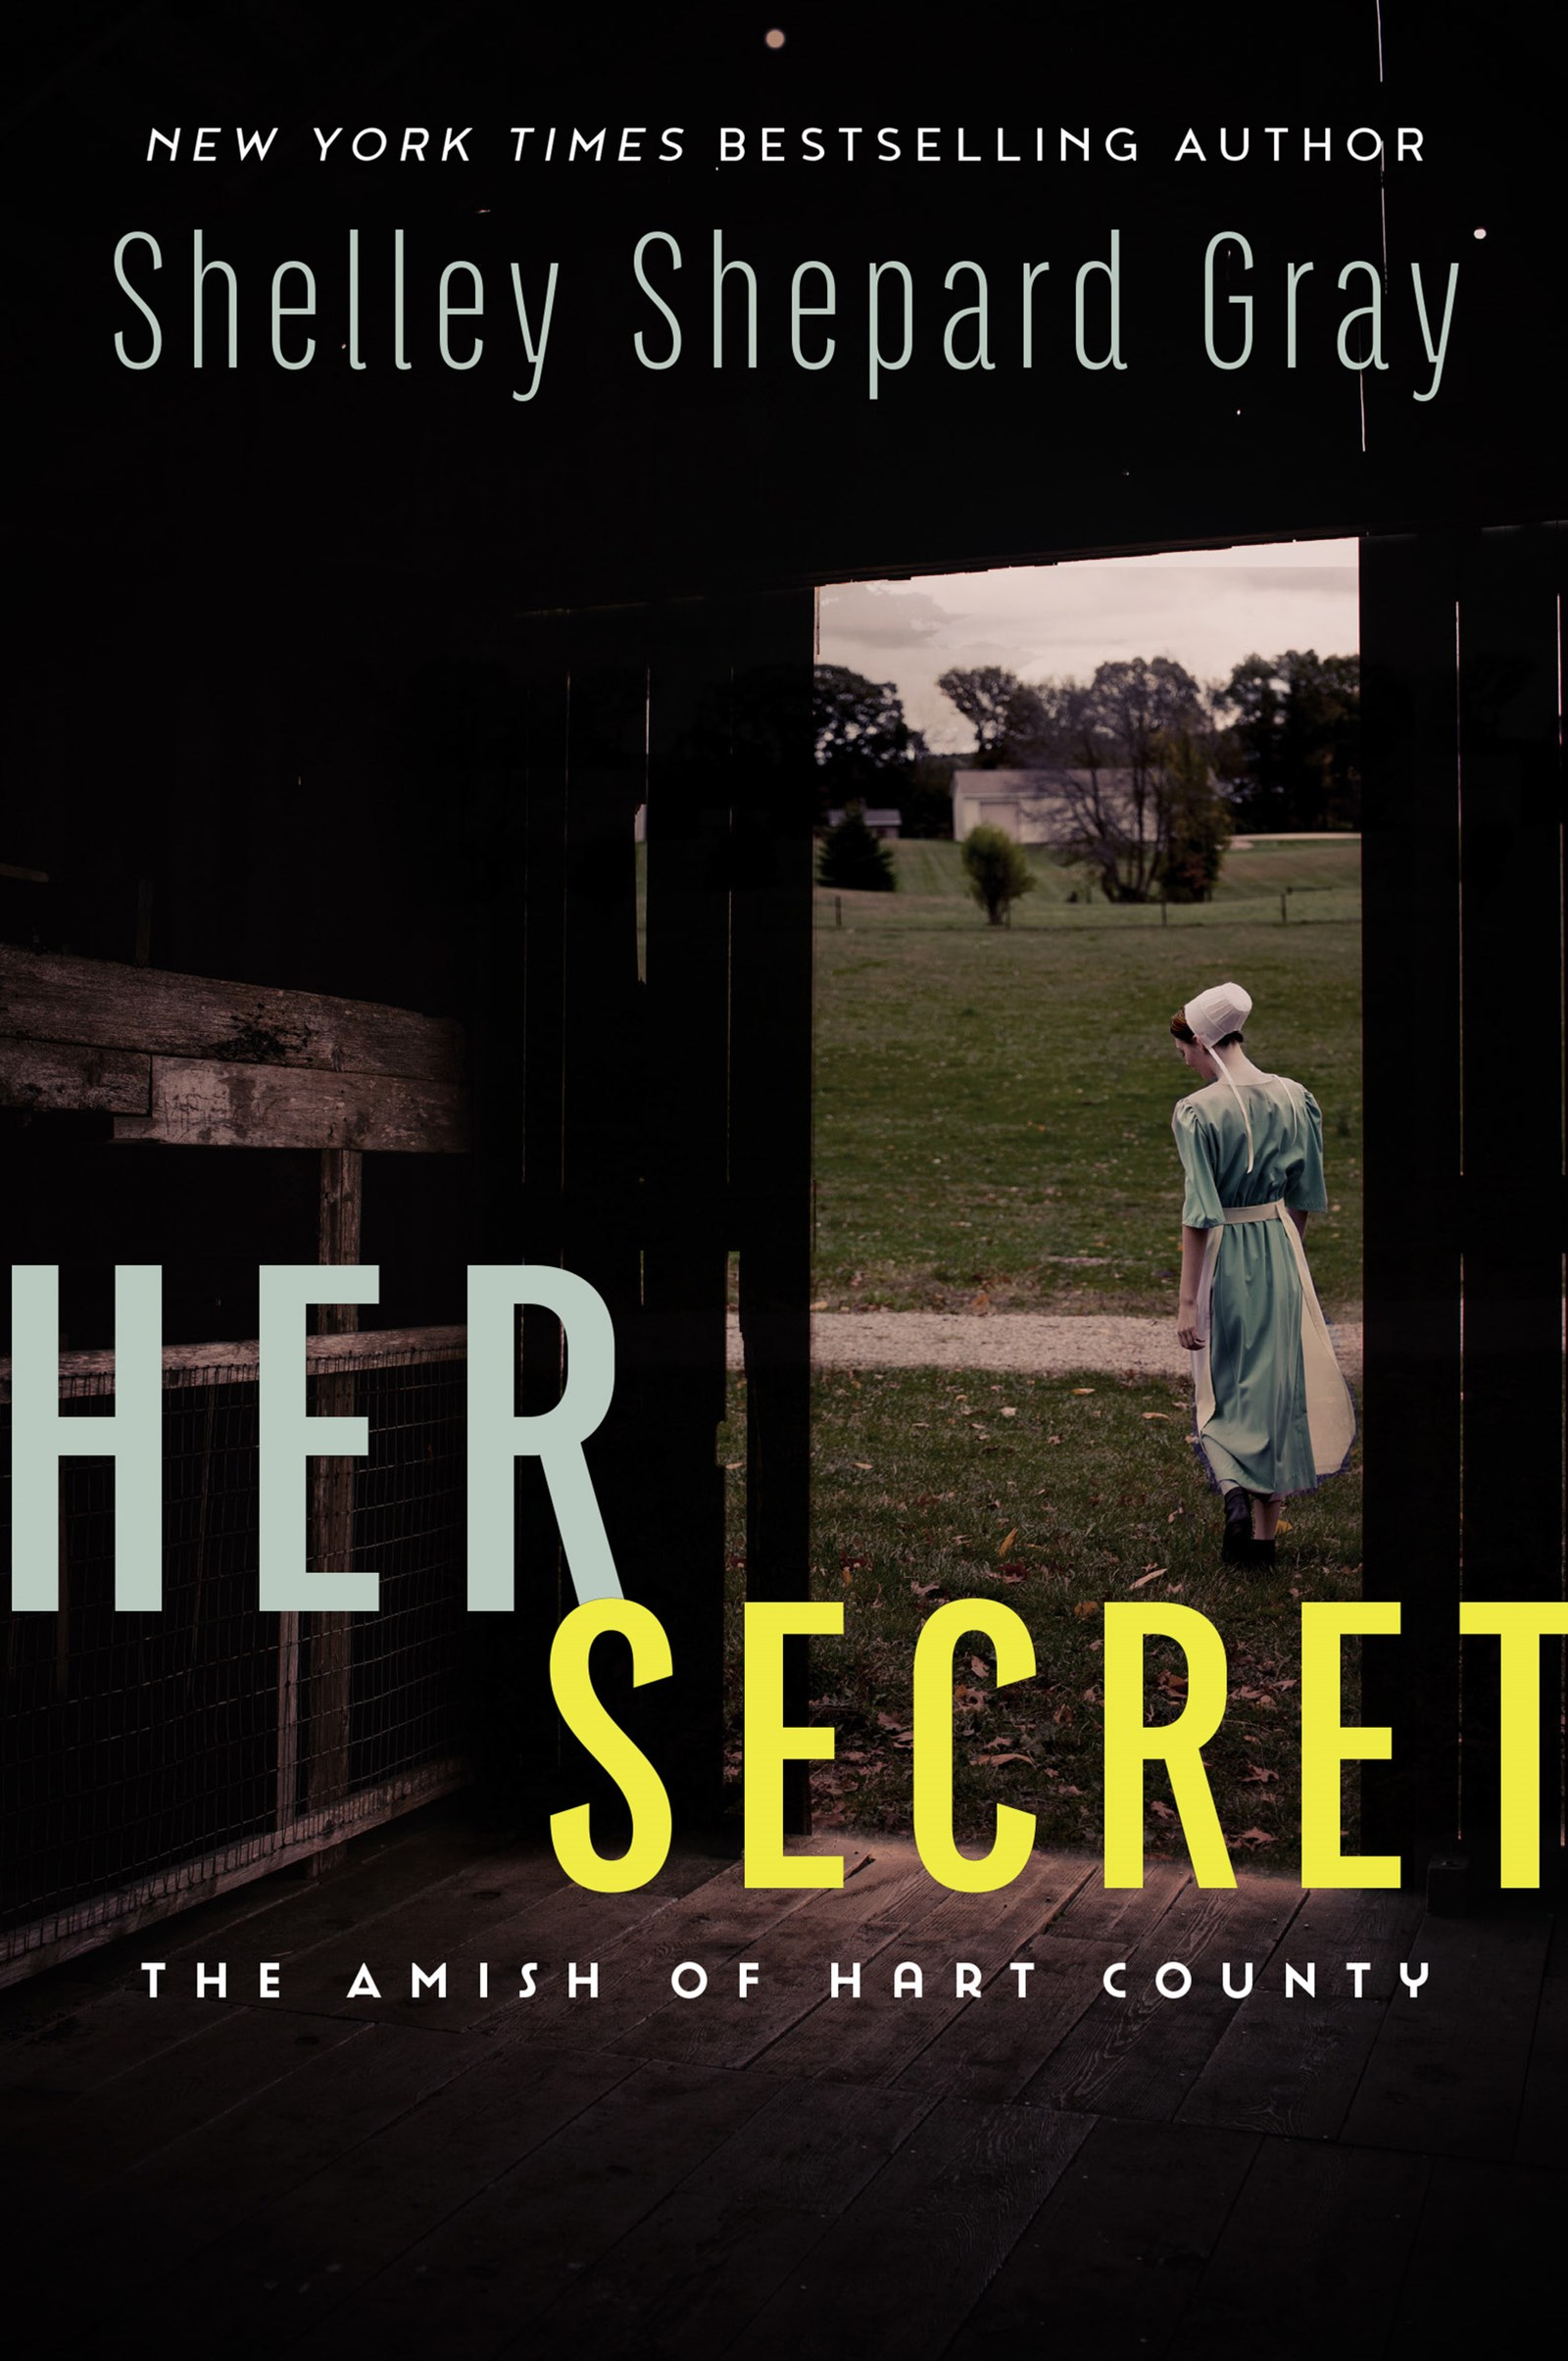 Her Secret: The Amish of Hart County